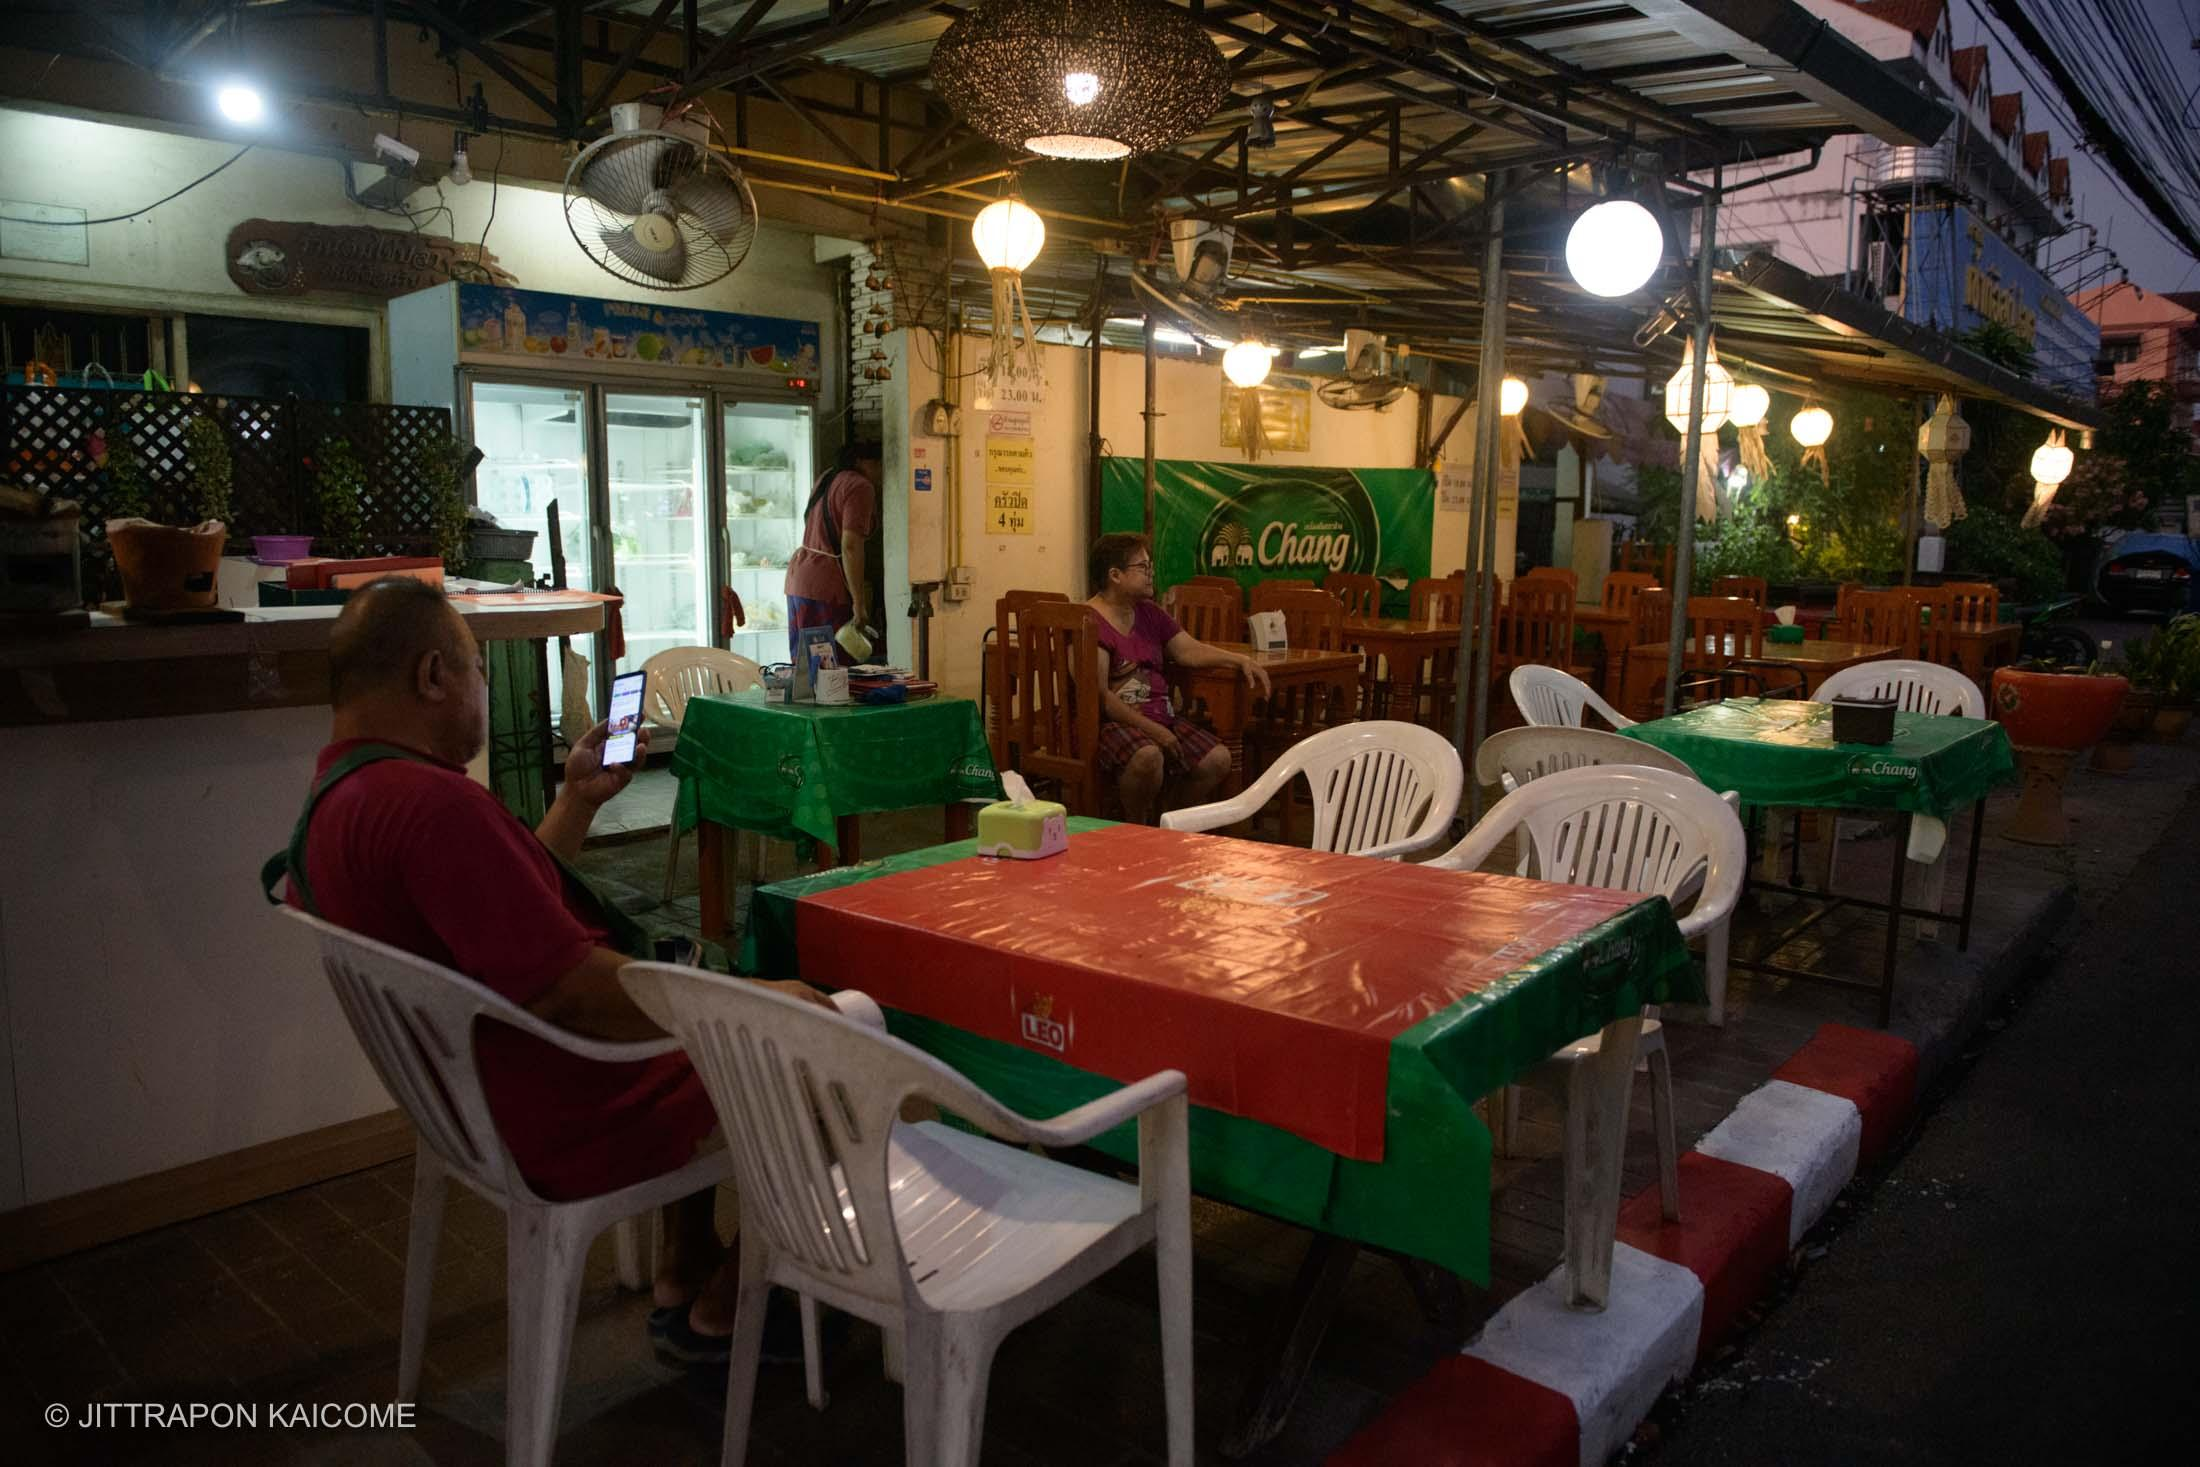 07.08 PM - No customers at the restaurant on the sidewalk at the square of Chiang Mai old town due to the Coronavirus outbreak. Chiang Mai, Thailand in May 16, 2020.